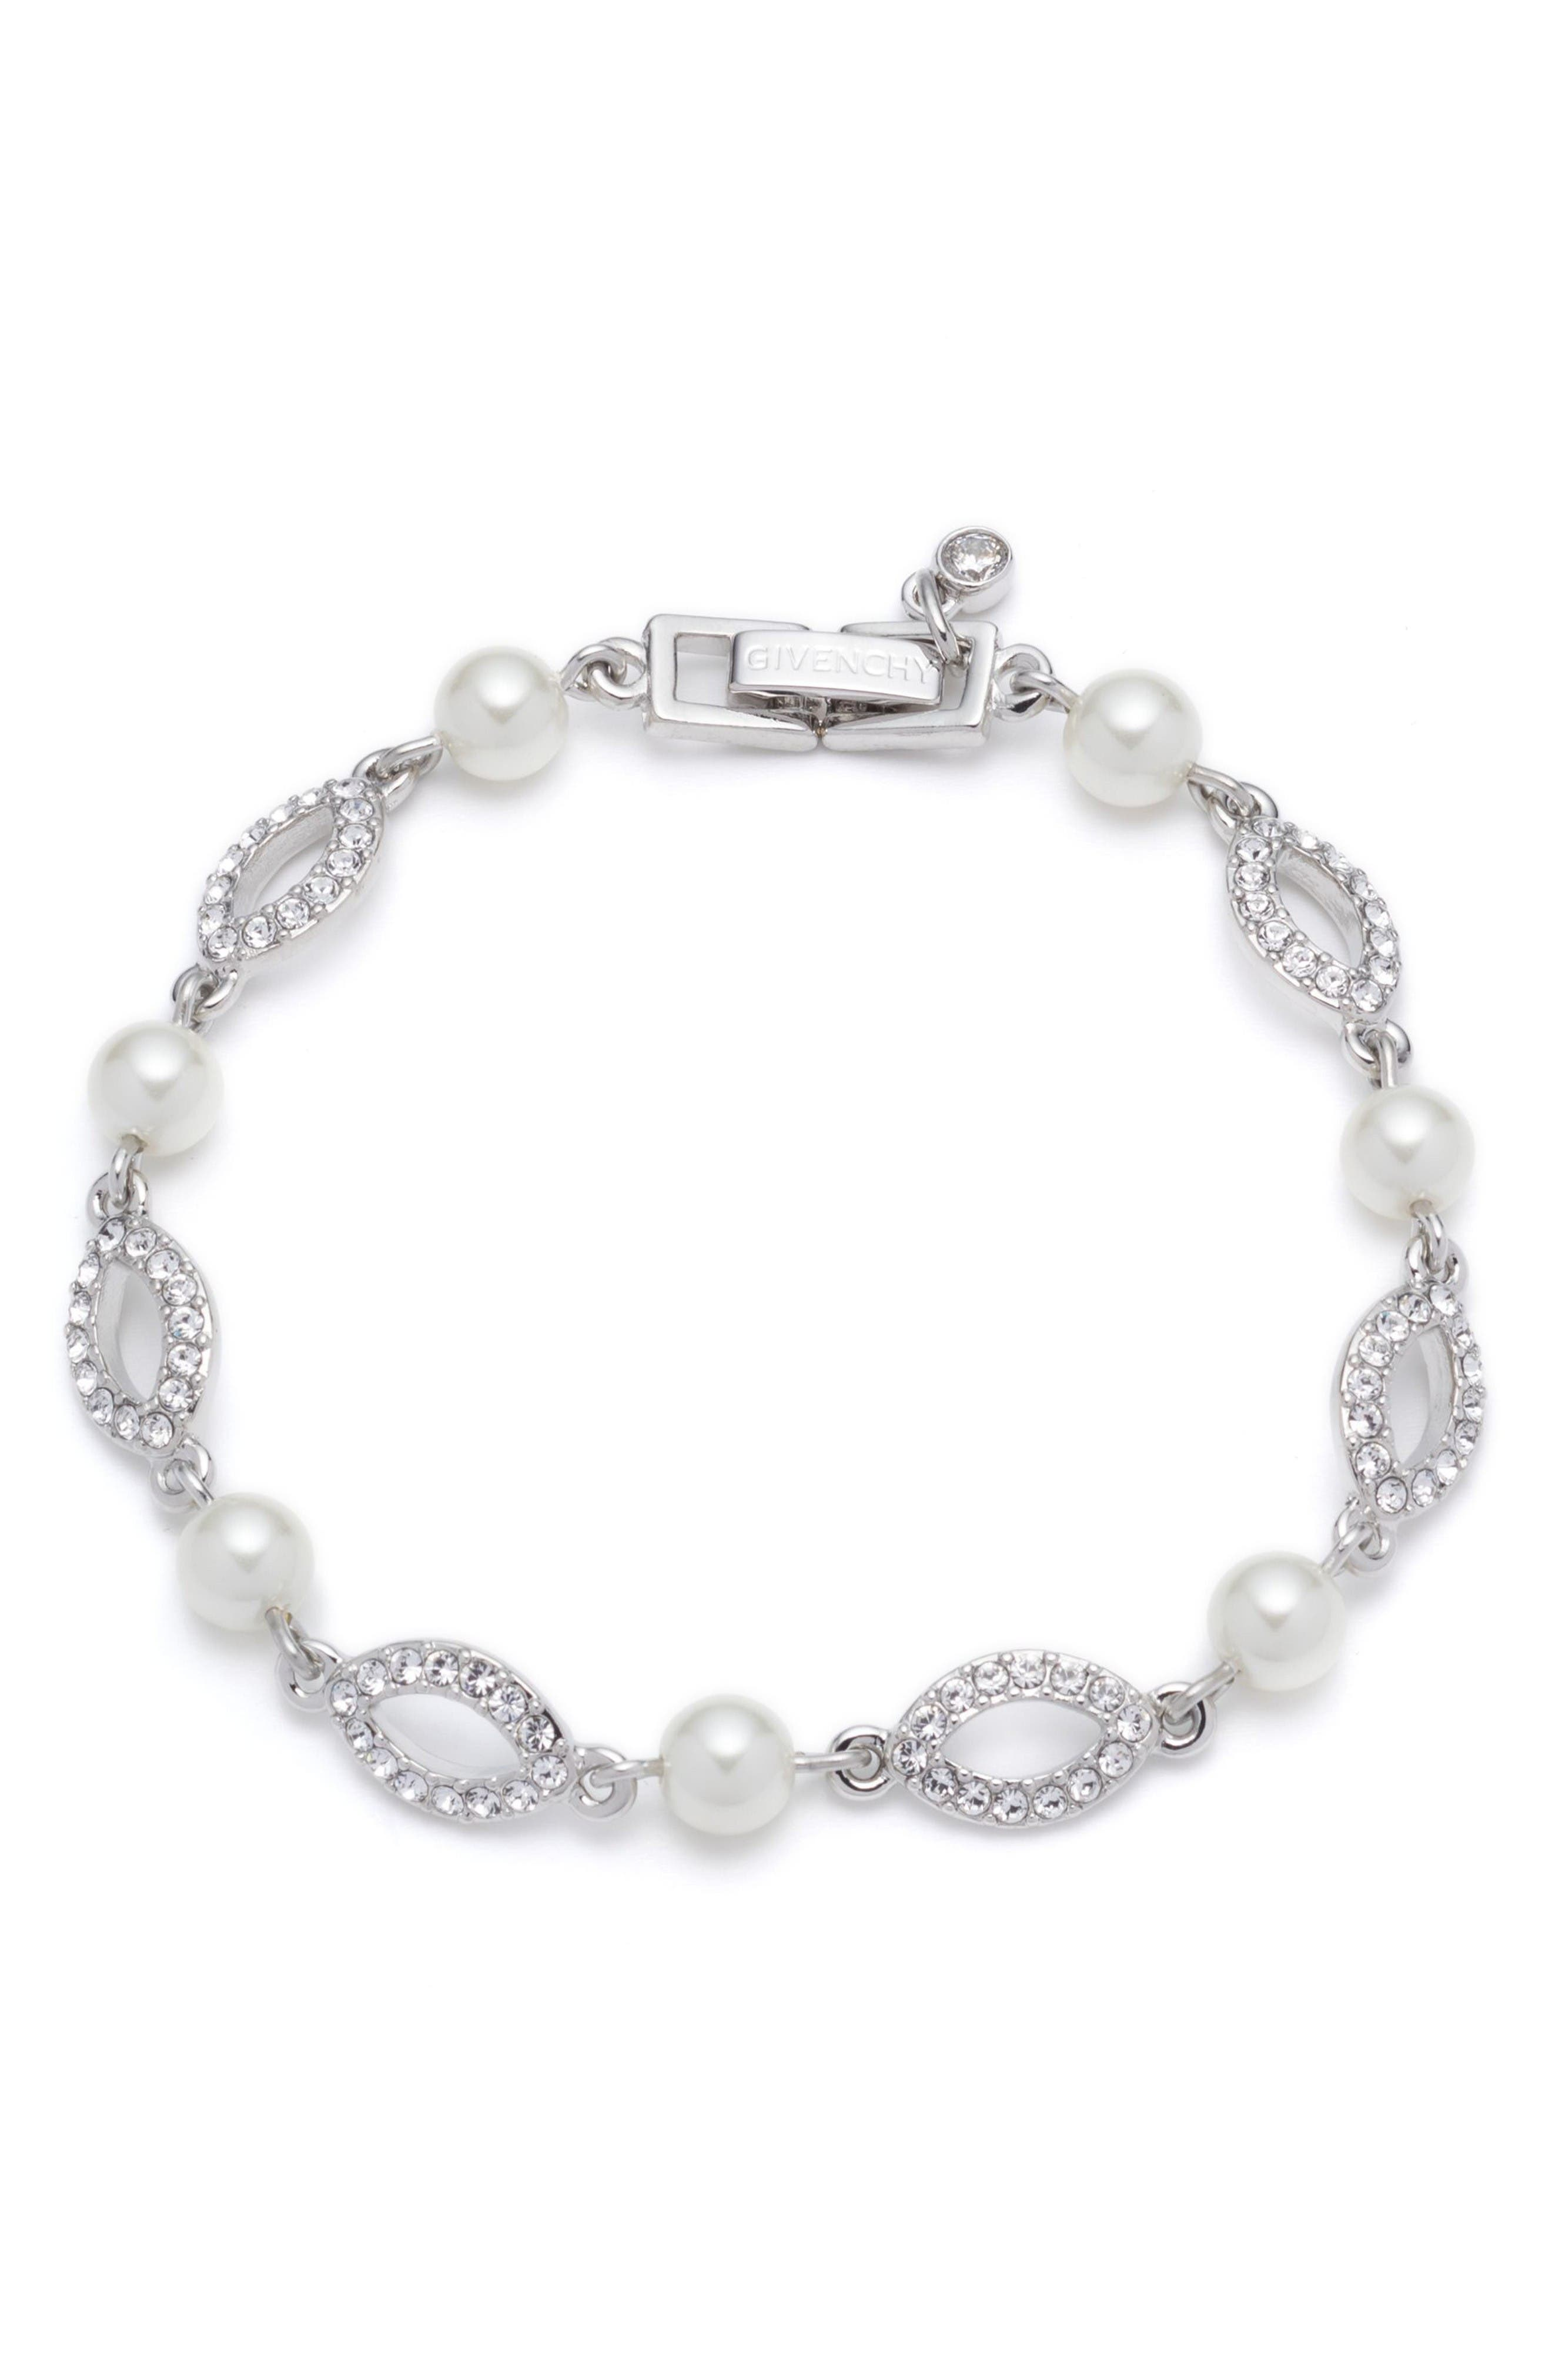 Imitation Pearl & Crystal Line Bracelet,                         Main,                         color, Silver / White